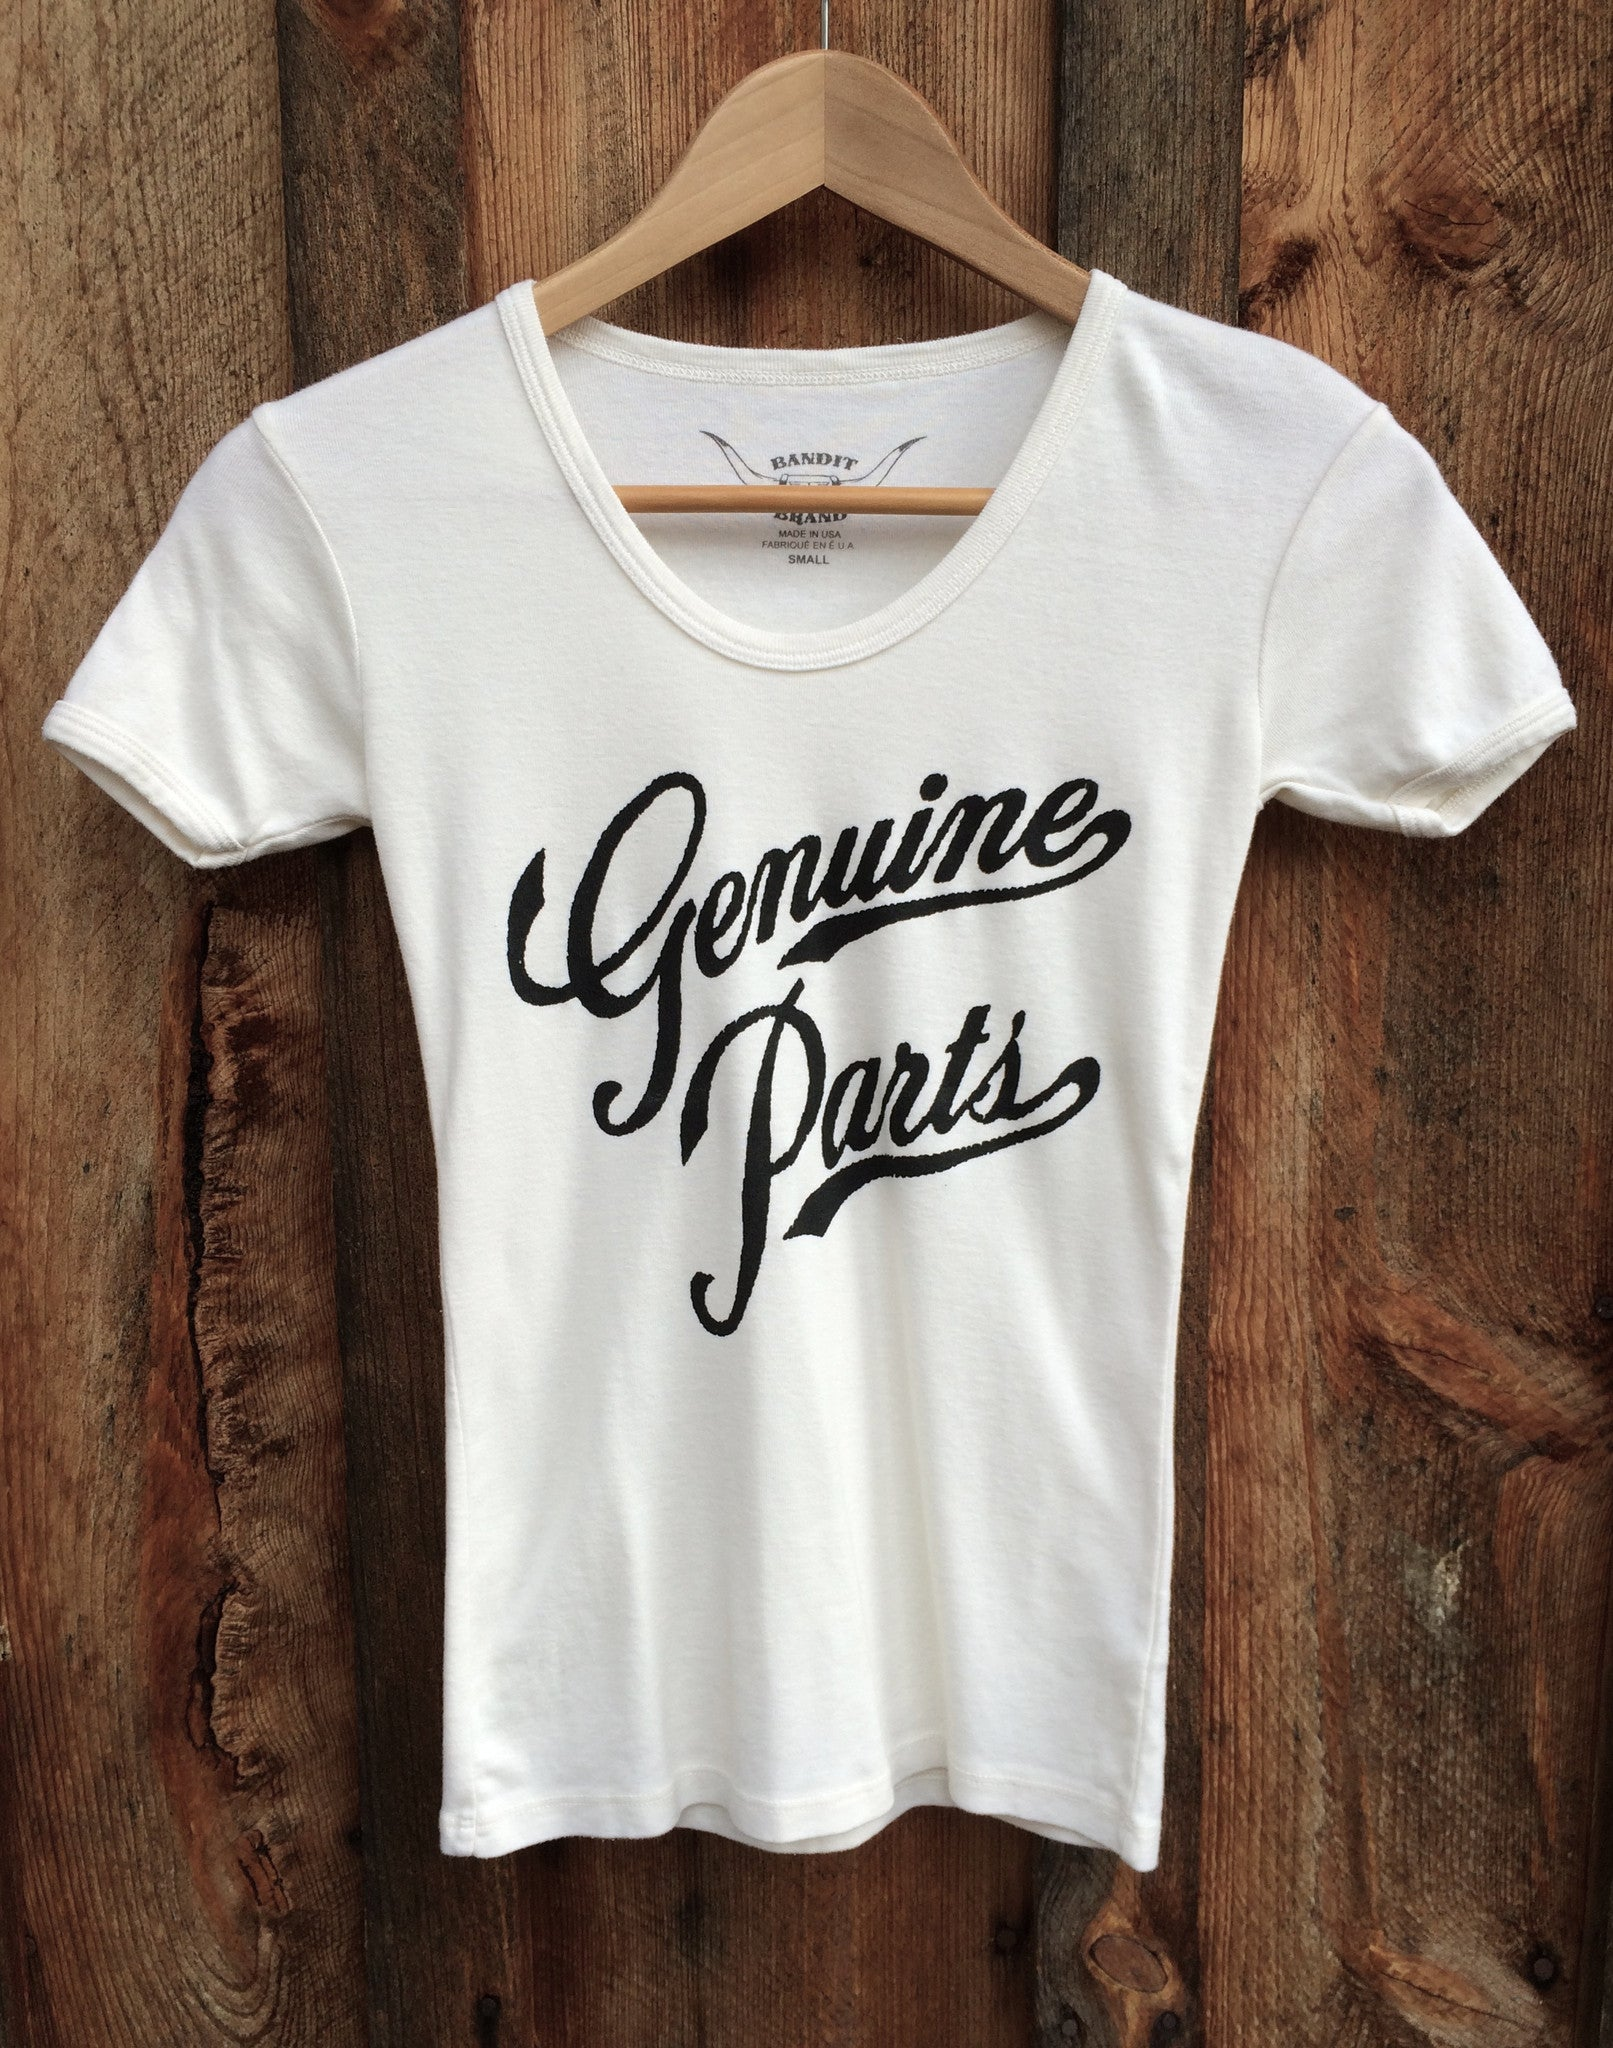 Genuine Parts 70's Tee White/Black